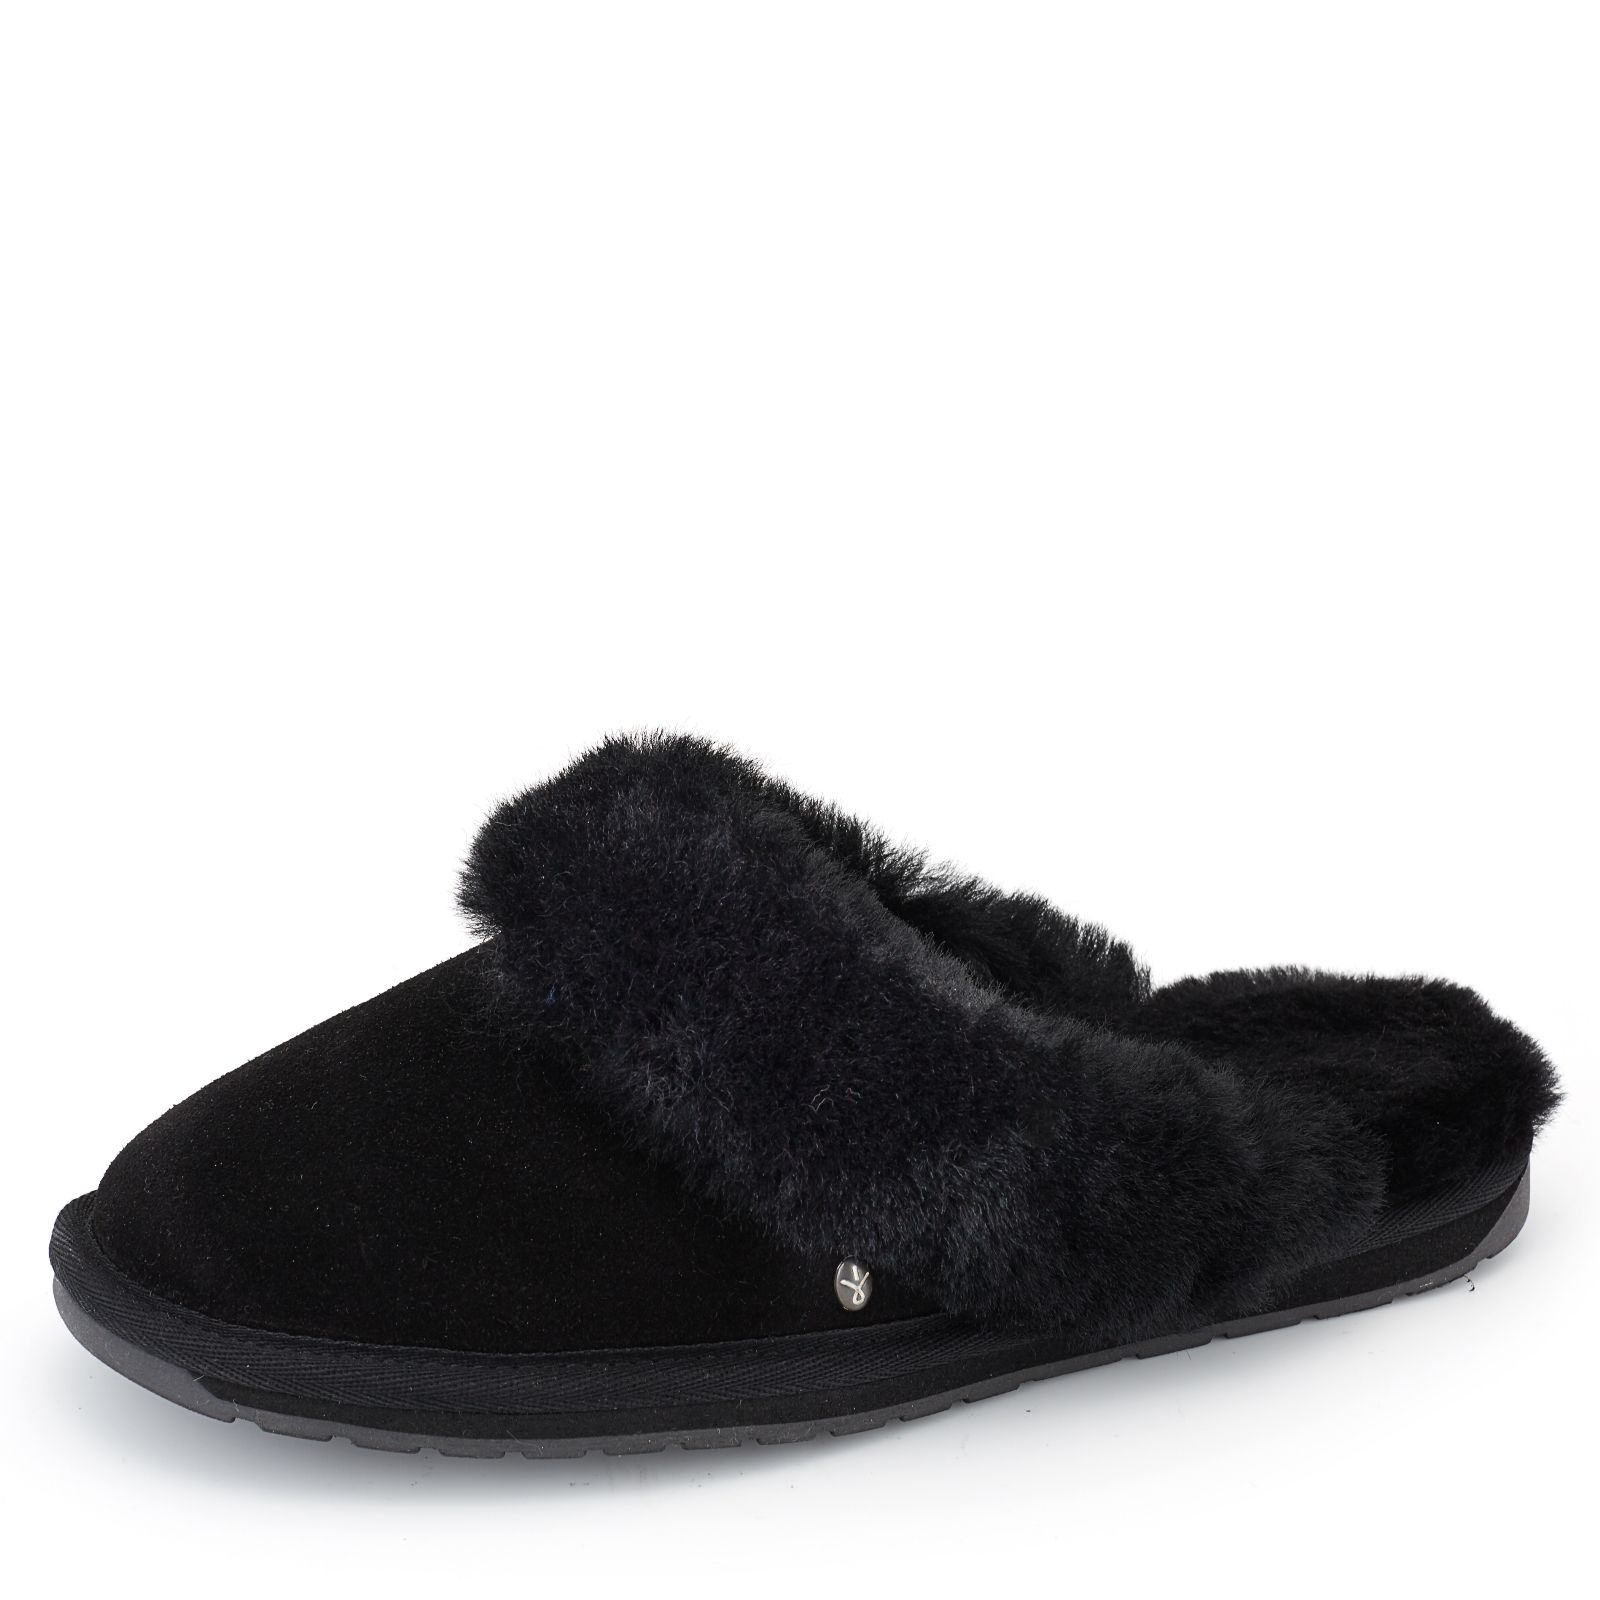 29454c262ccb Emu Nest Jolie Sheepskin Slippers - QVC UK